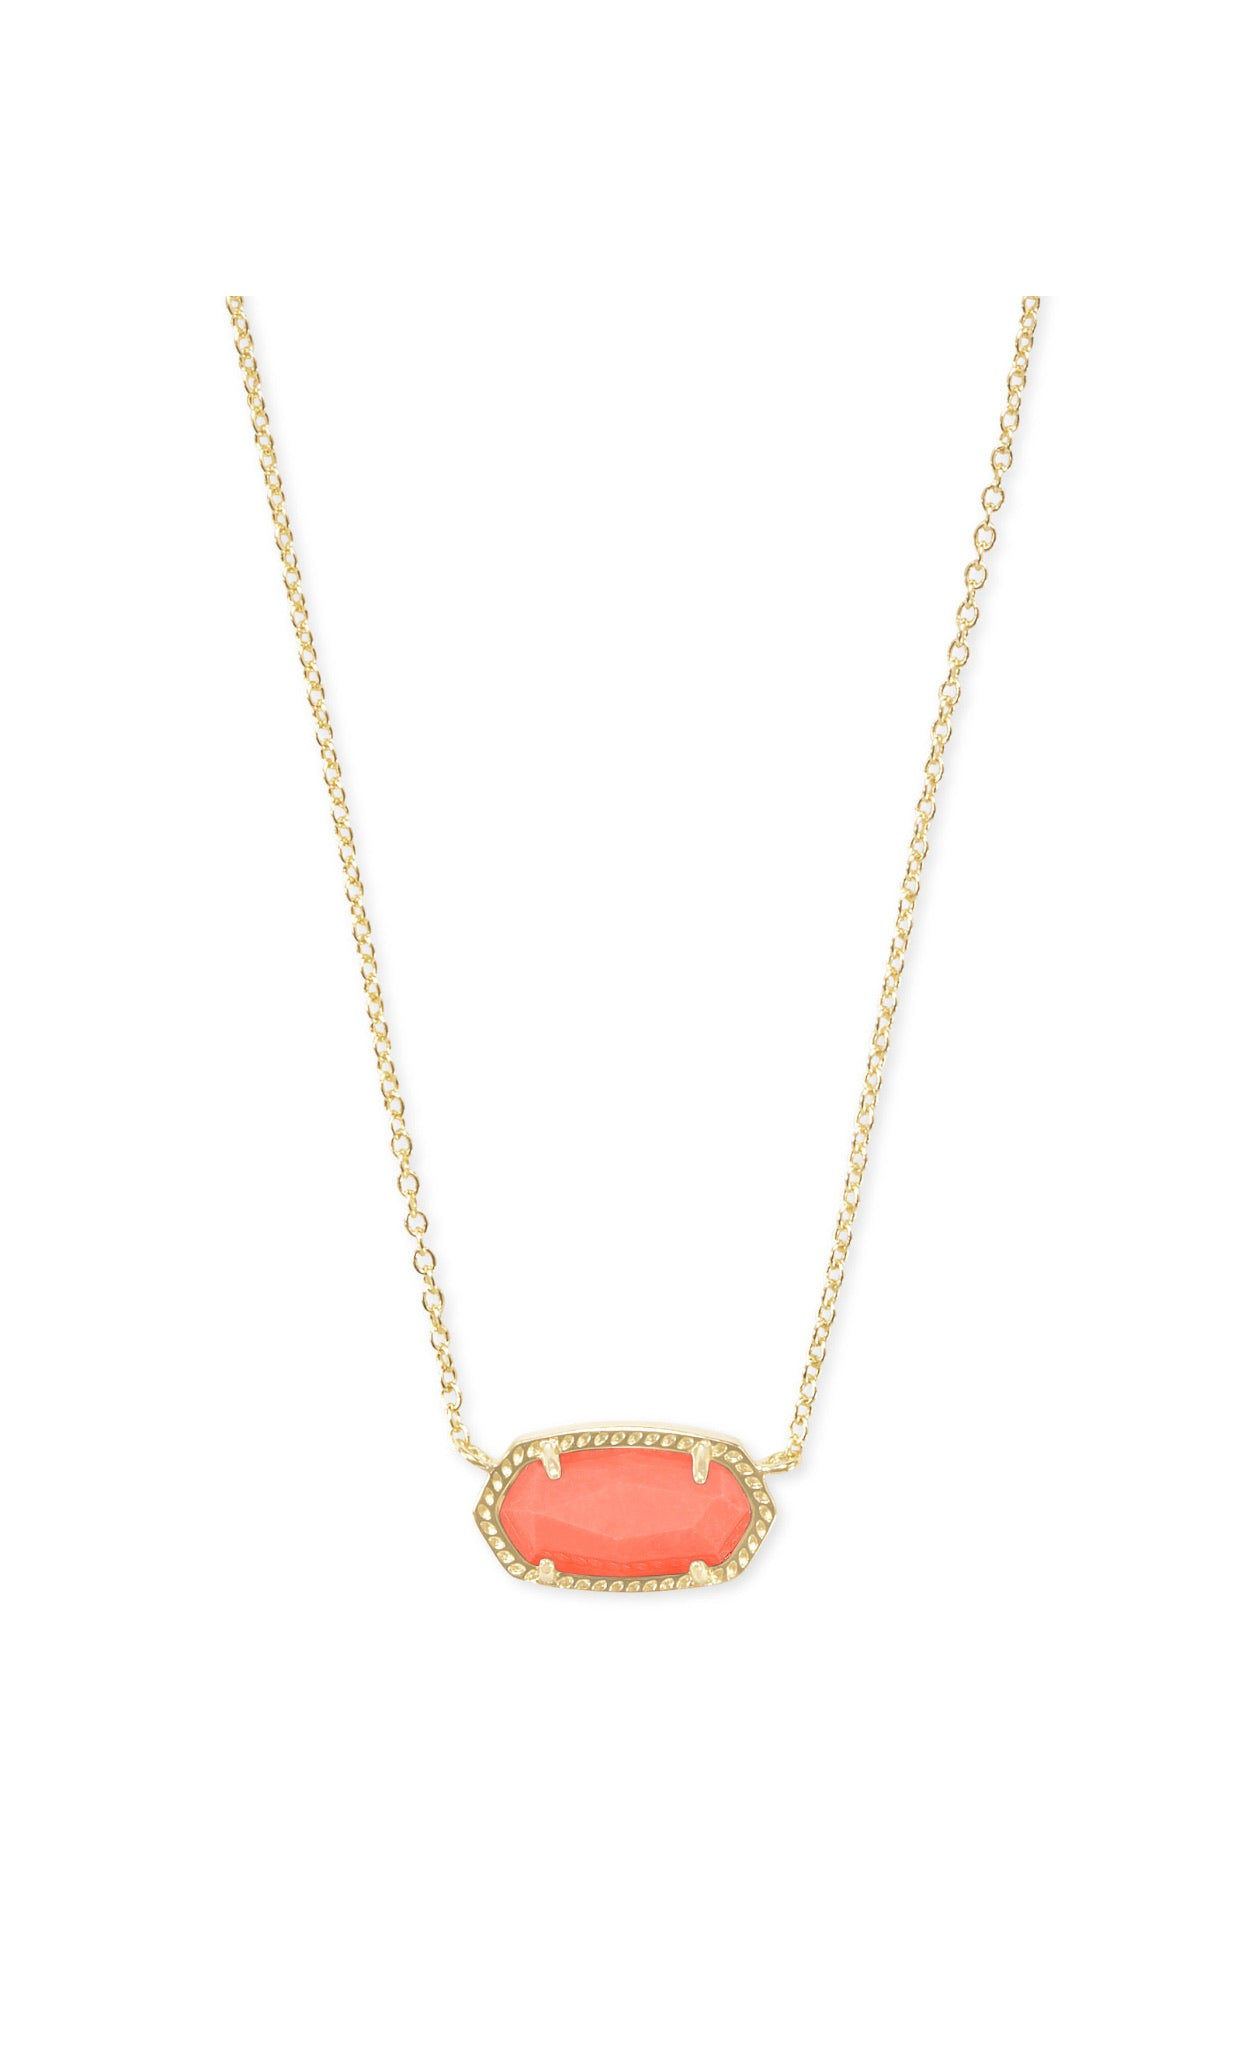 ELISA NECKLACE GOLD Coral